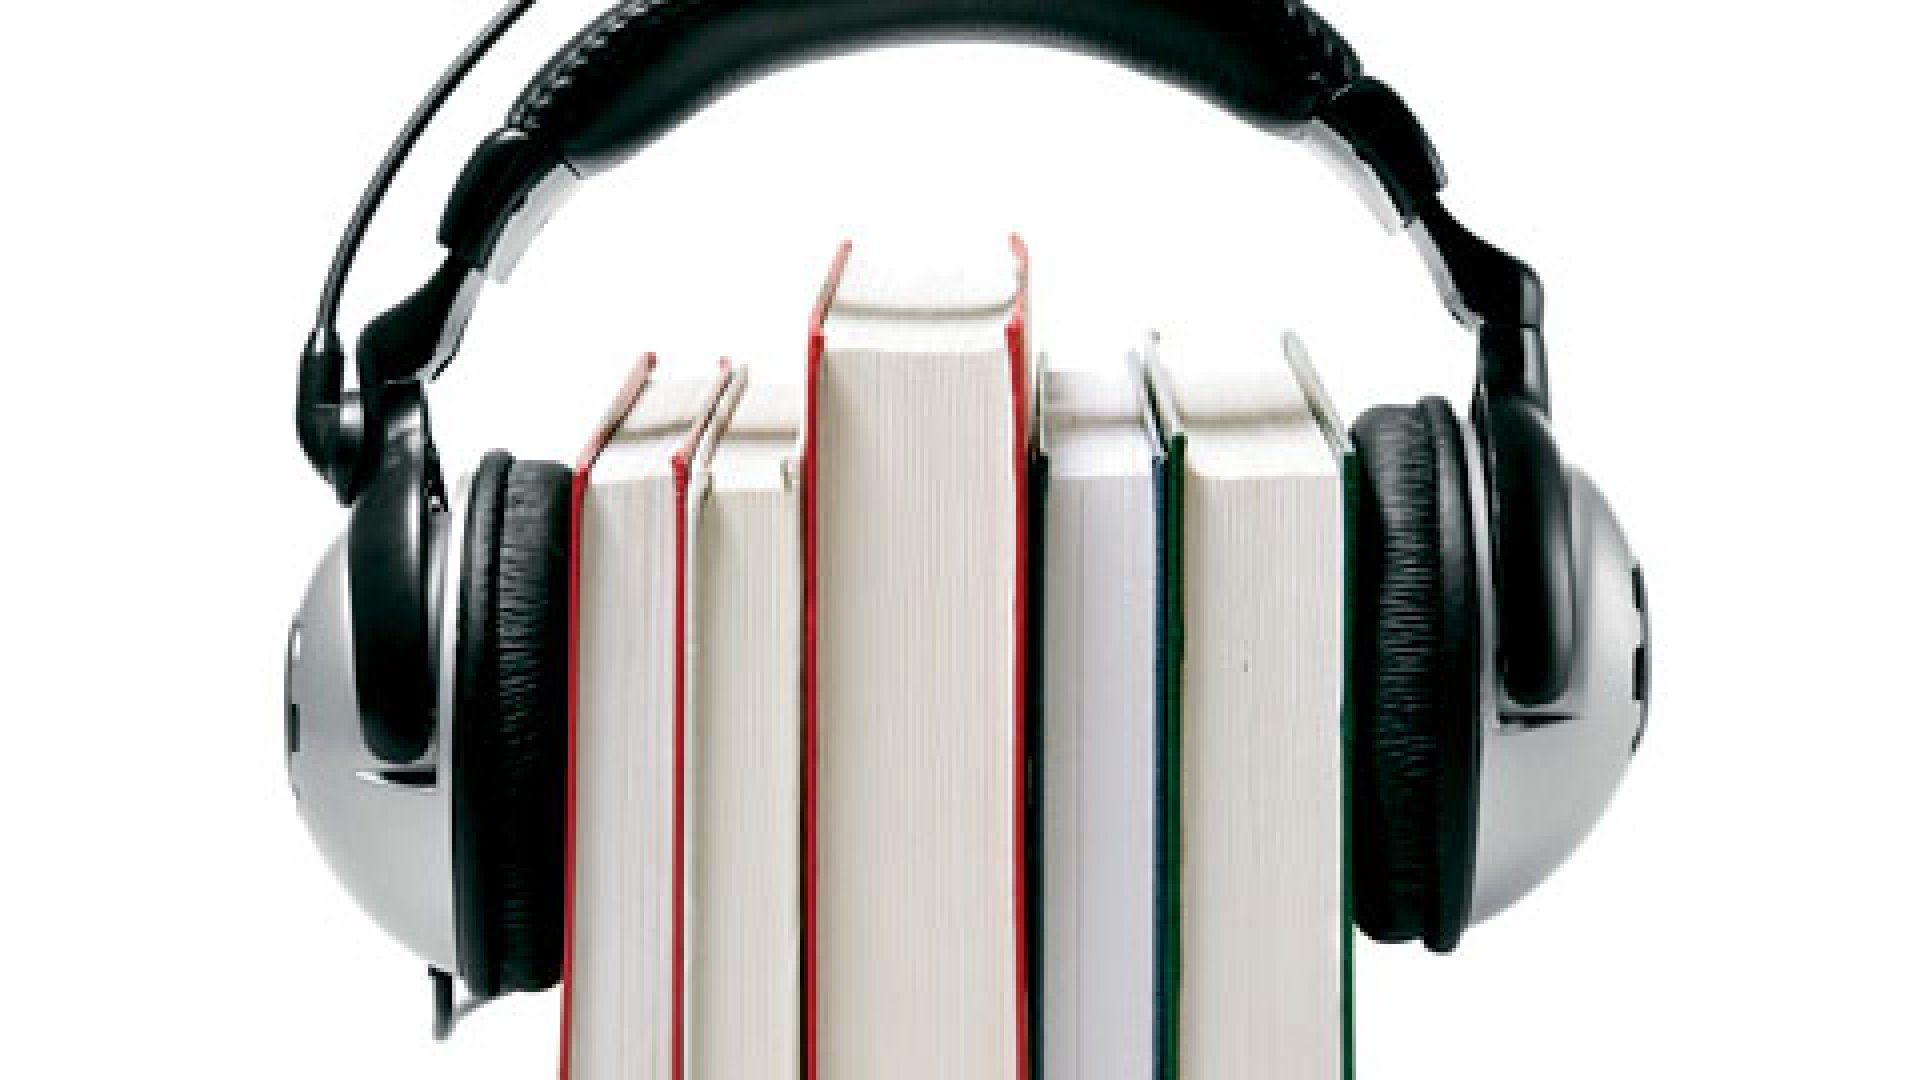 <strong>THE MARKET</strong><br />Americans purchase more than $1 billion worth of audio books each year.